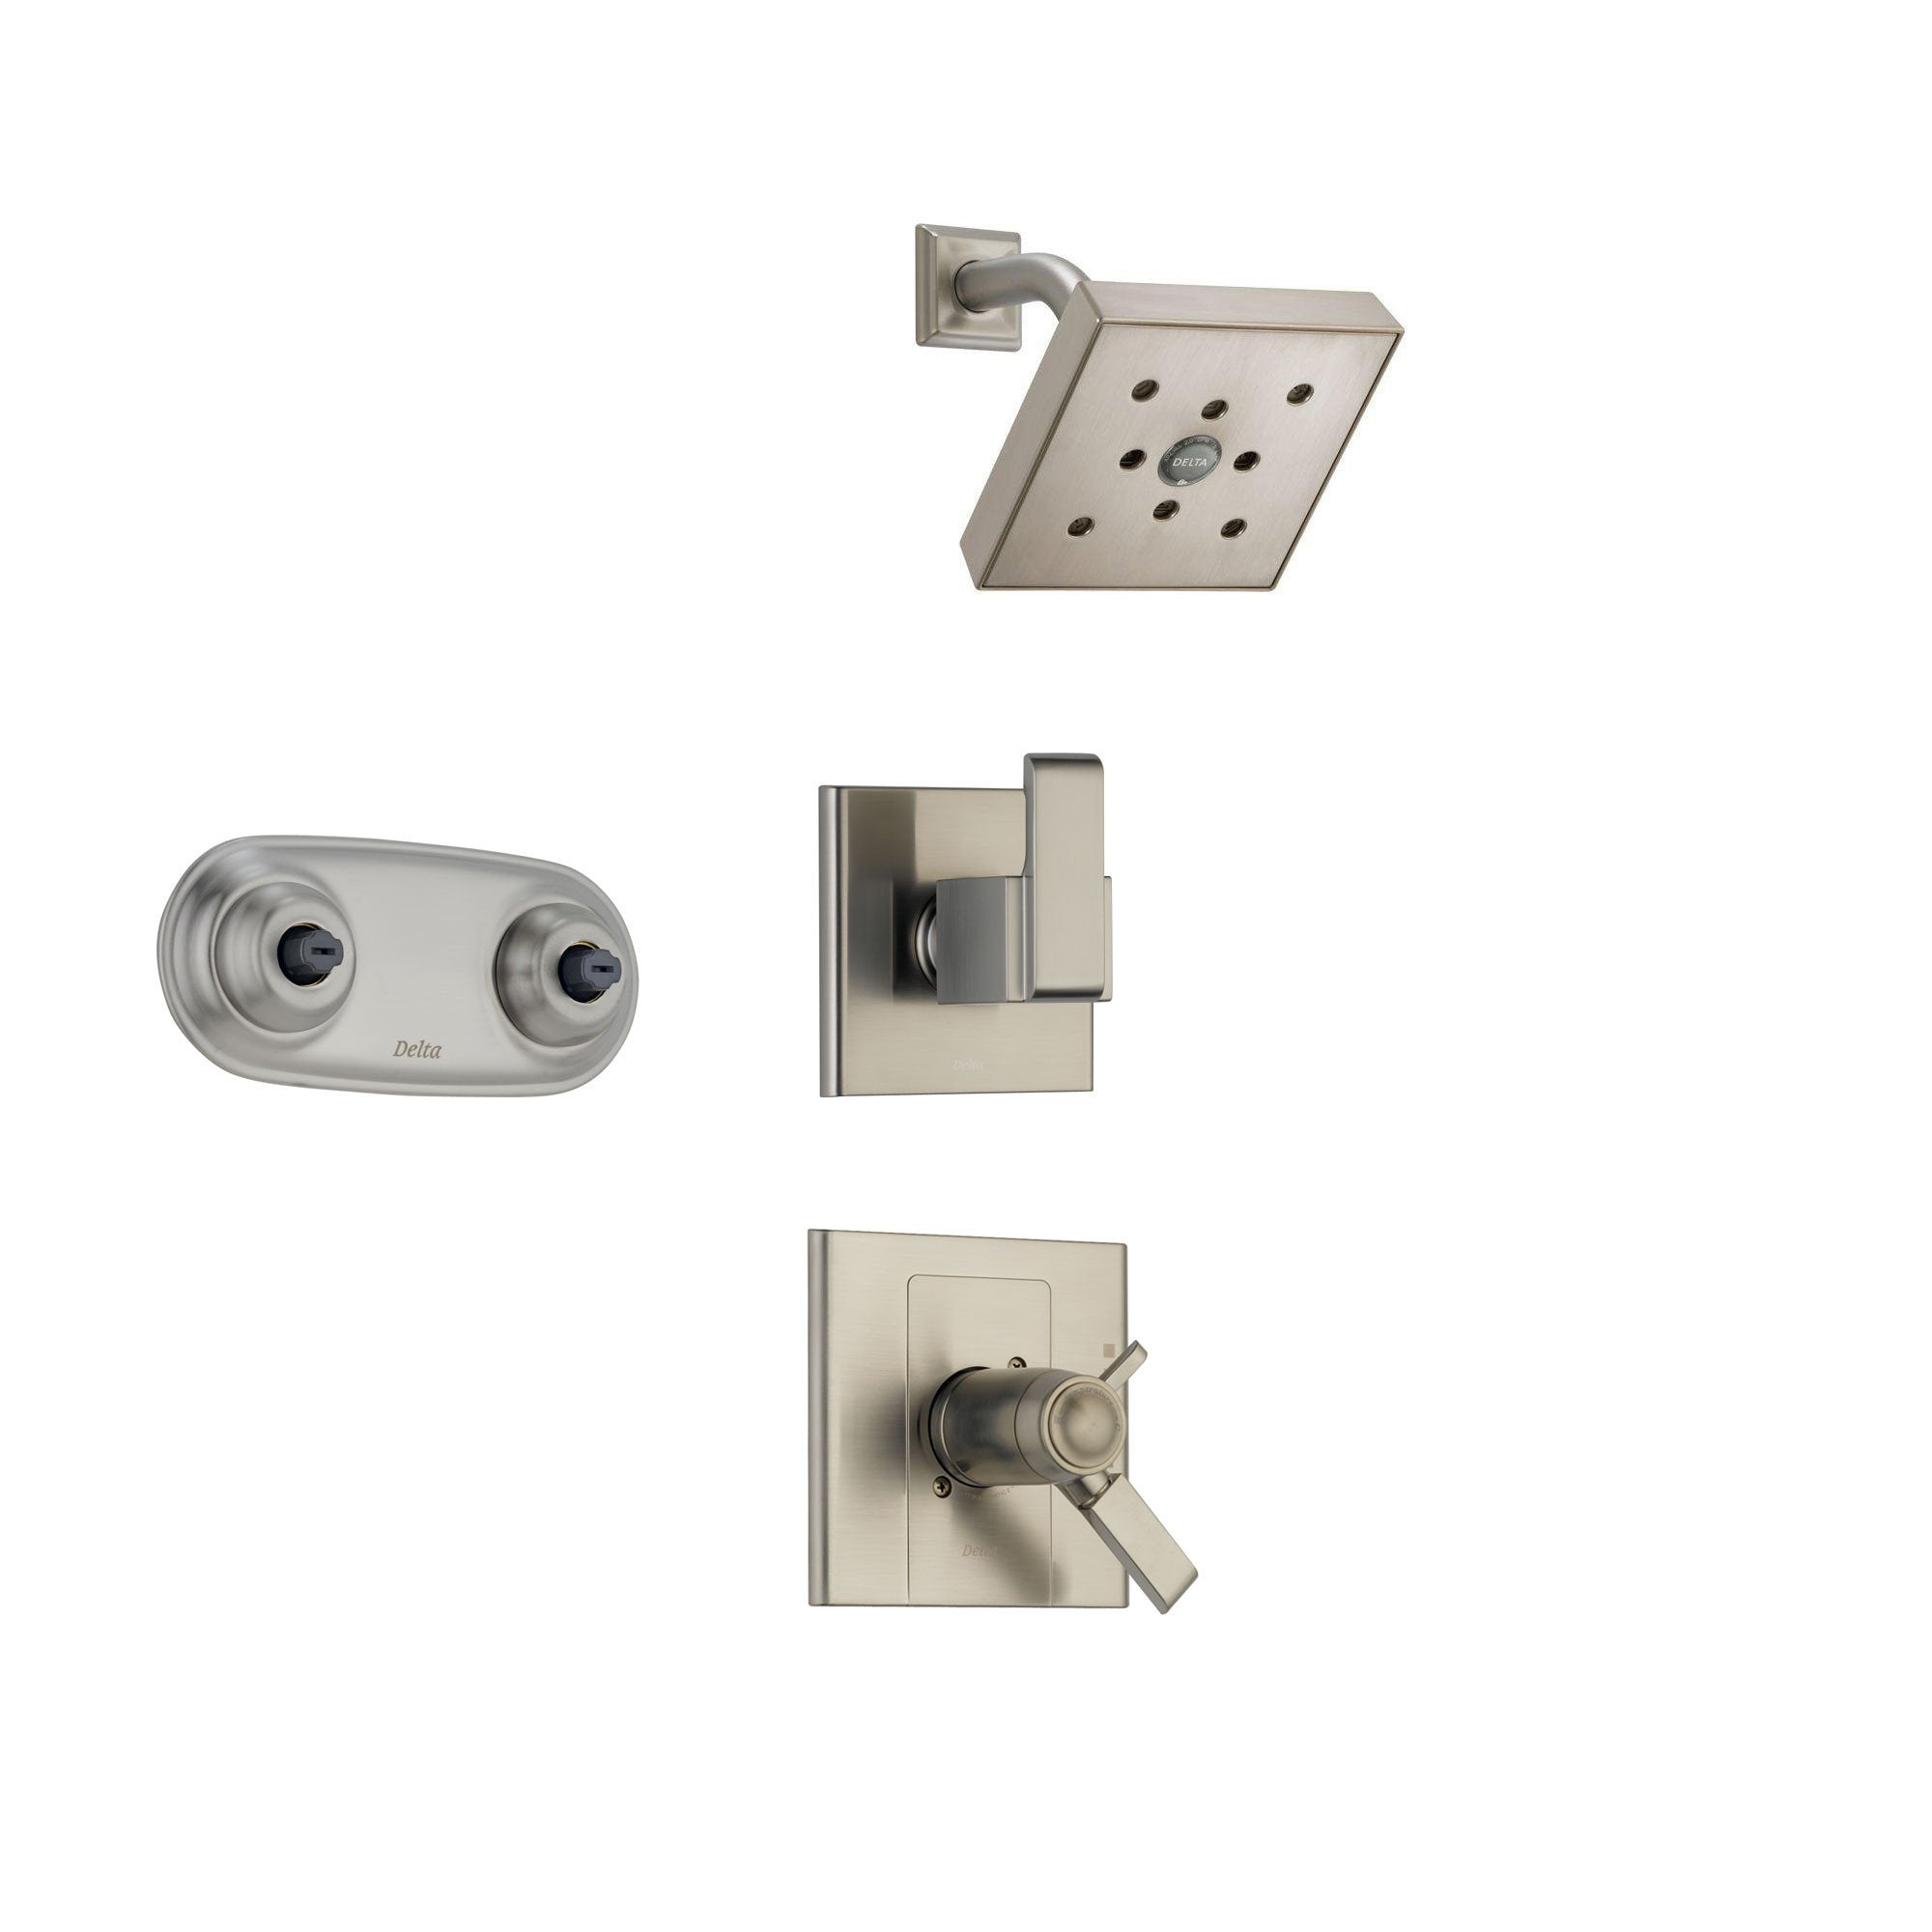 Delta Arzo Stainless Steel Shower System with Thermostatic Shower Handle, 3-setting Diverter, Square Modern Showerhead, and Dual Body Spray Plate SS17T8684SS